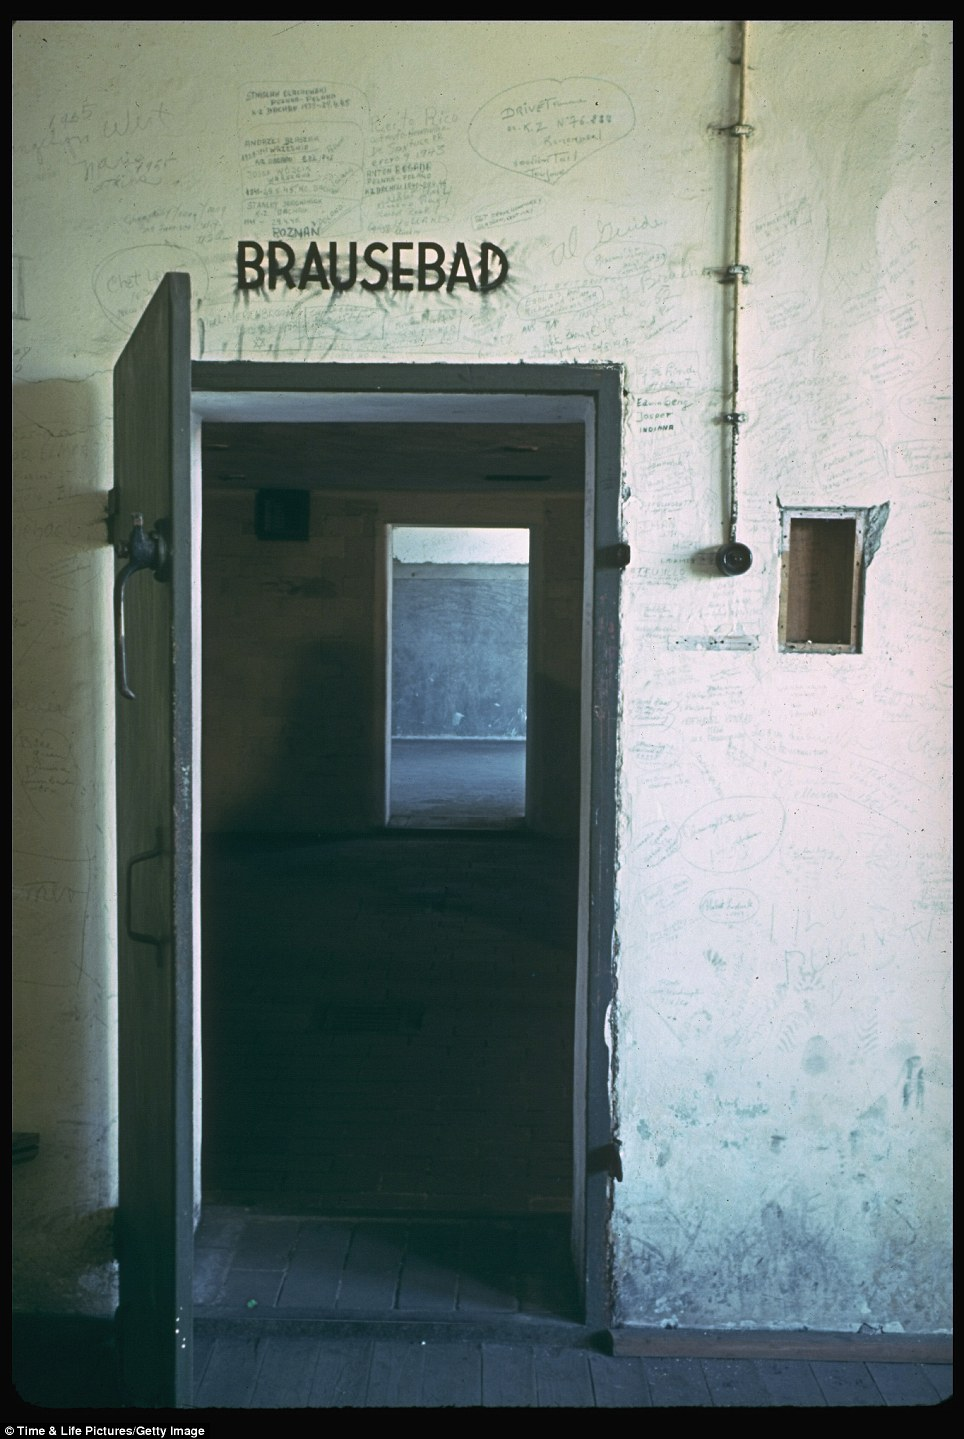 The Brausebad - shower - sign hangs over a door surrounded by graffiti. The doorway led to the gas chamber